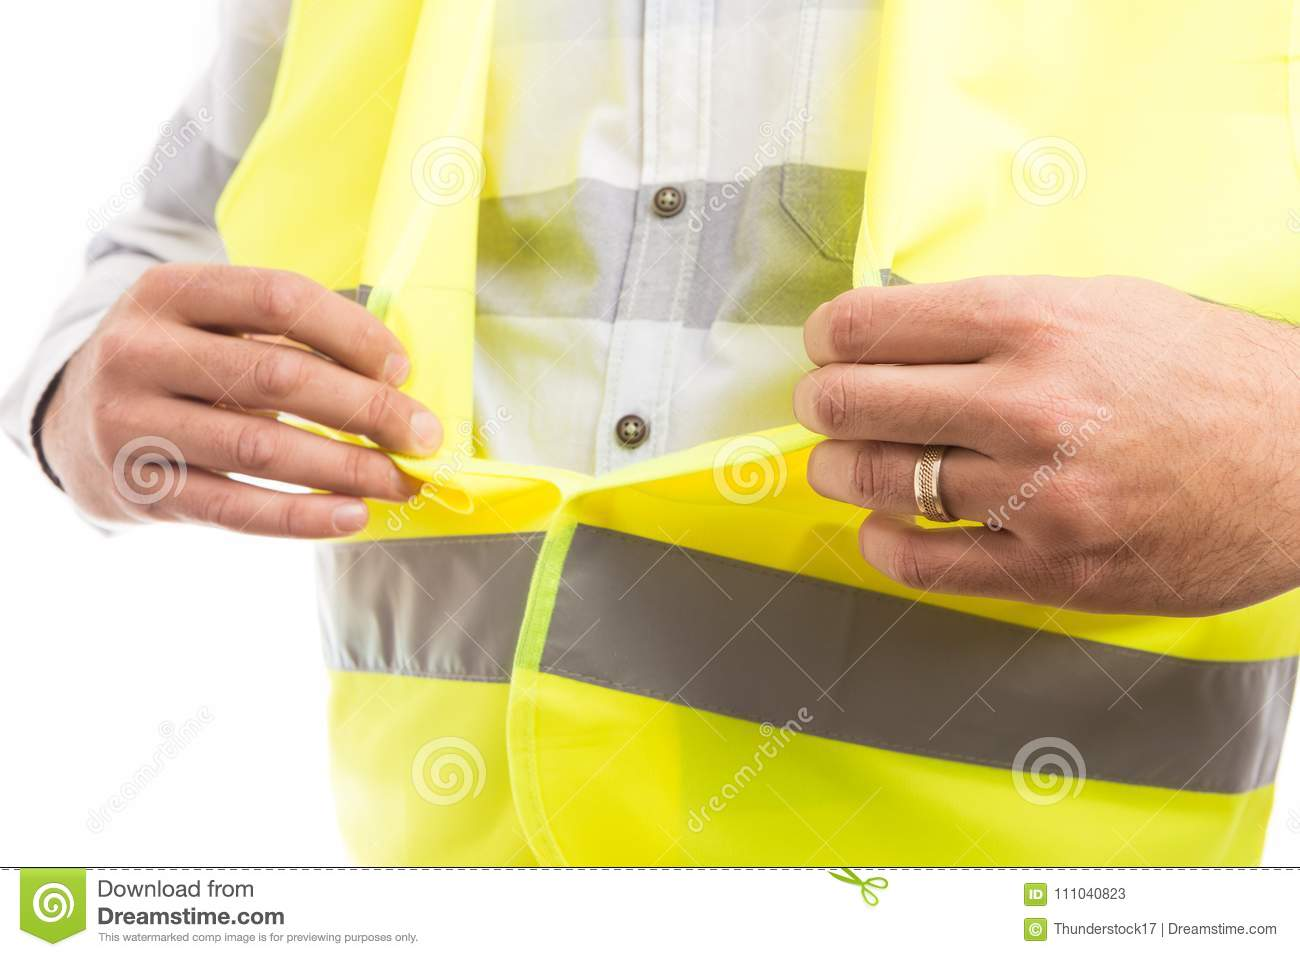 Constructor hands closing velcro reflective protective vest